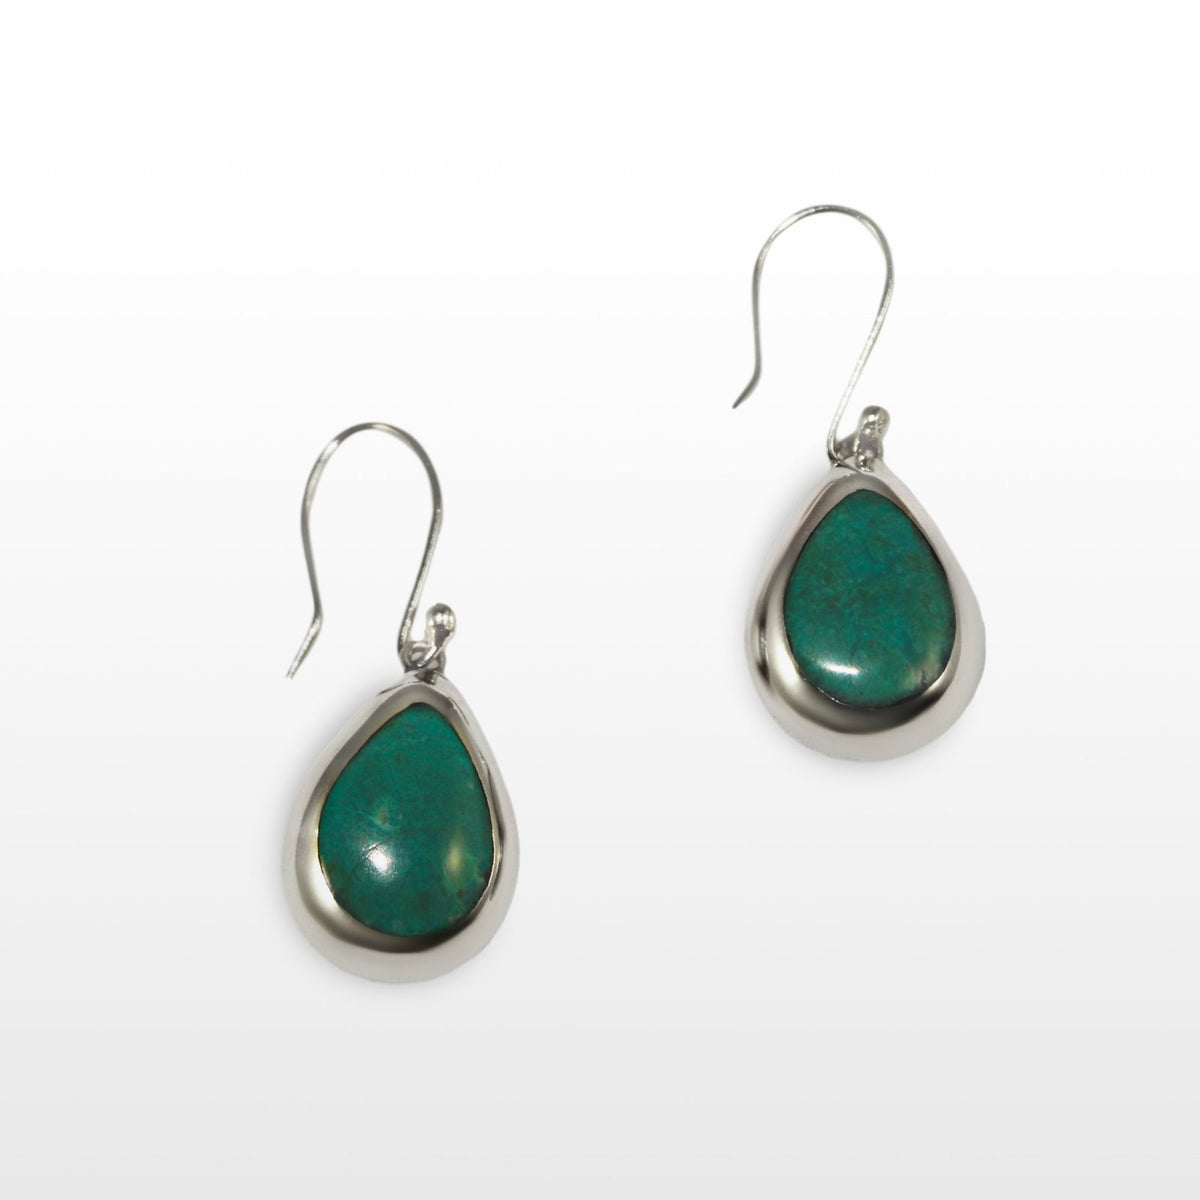 Chrysocolla Sterling Silver Flower Pendant Necklace & Earrings Set - Qinti - The Peruvian Shop